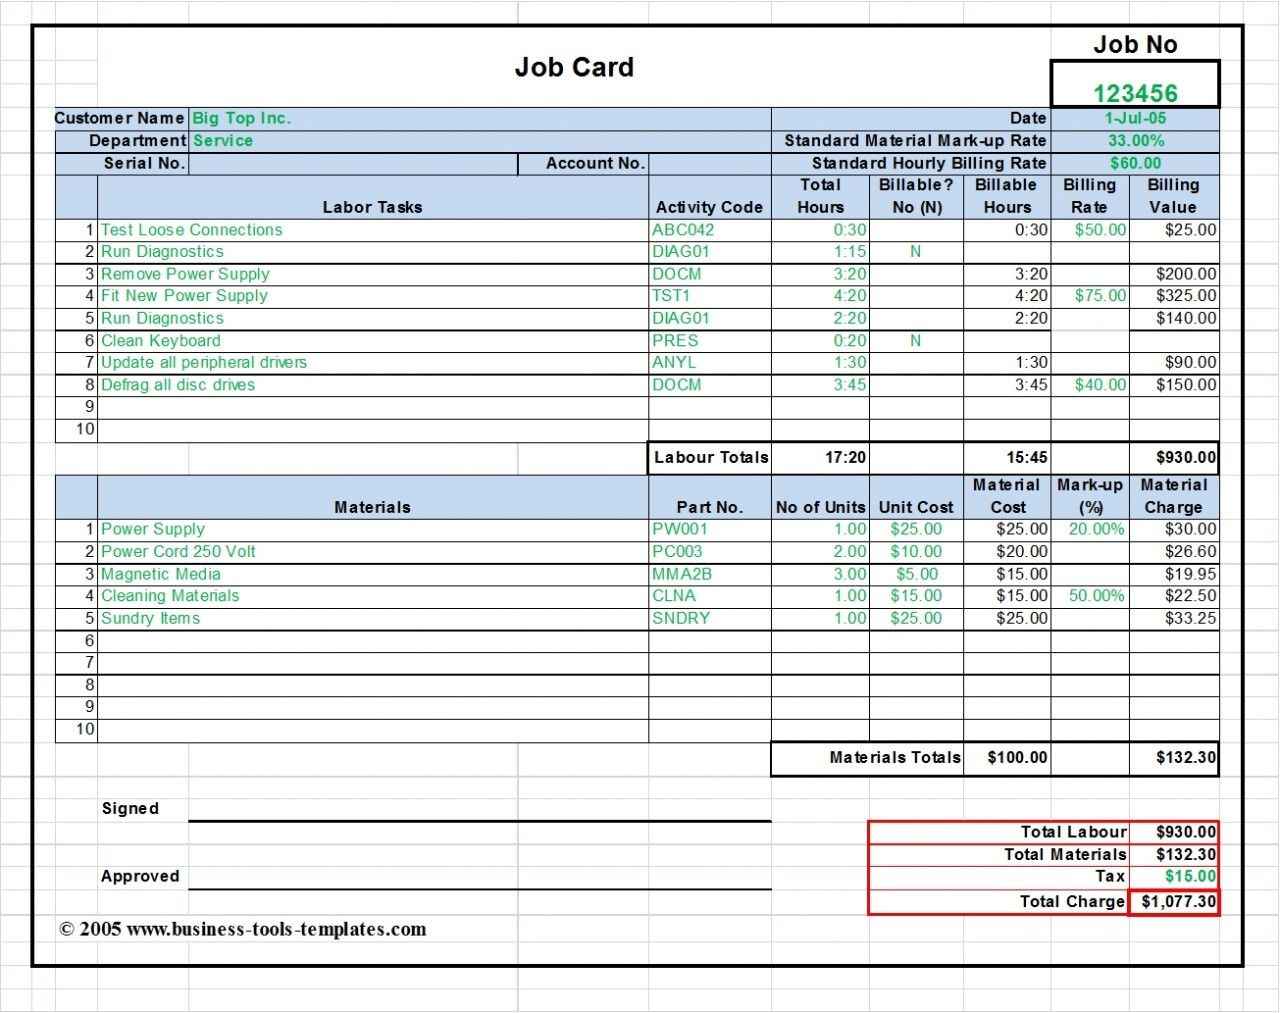 Workshop Job Card Template Excel, Labor & Material Cost Regarding Job Cost Report Template Excel